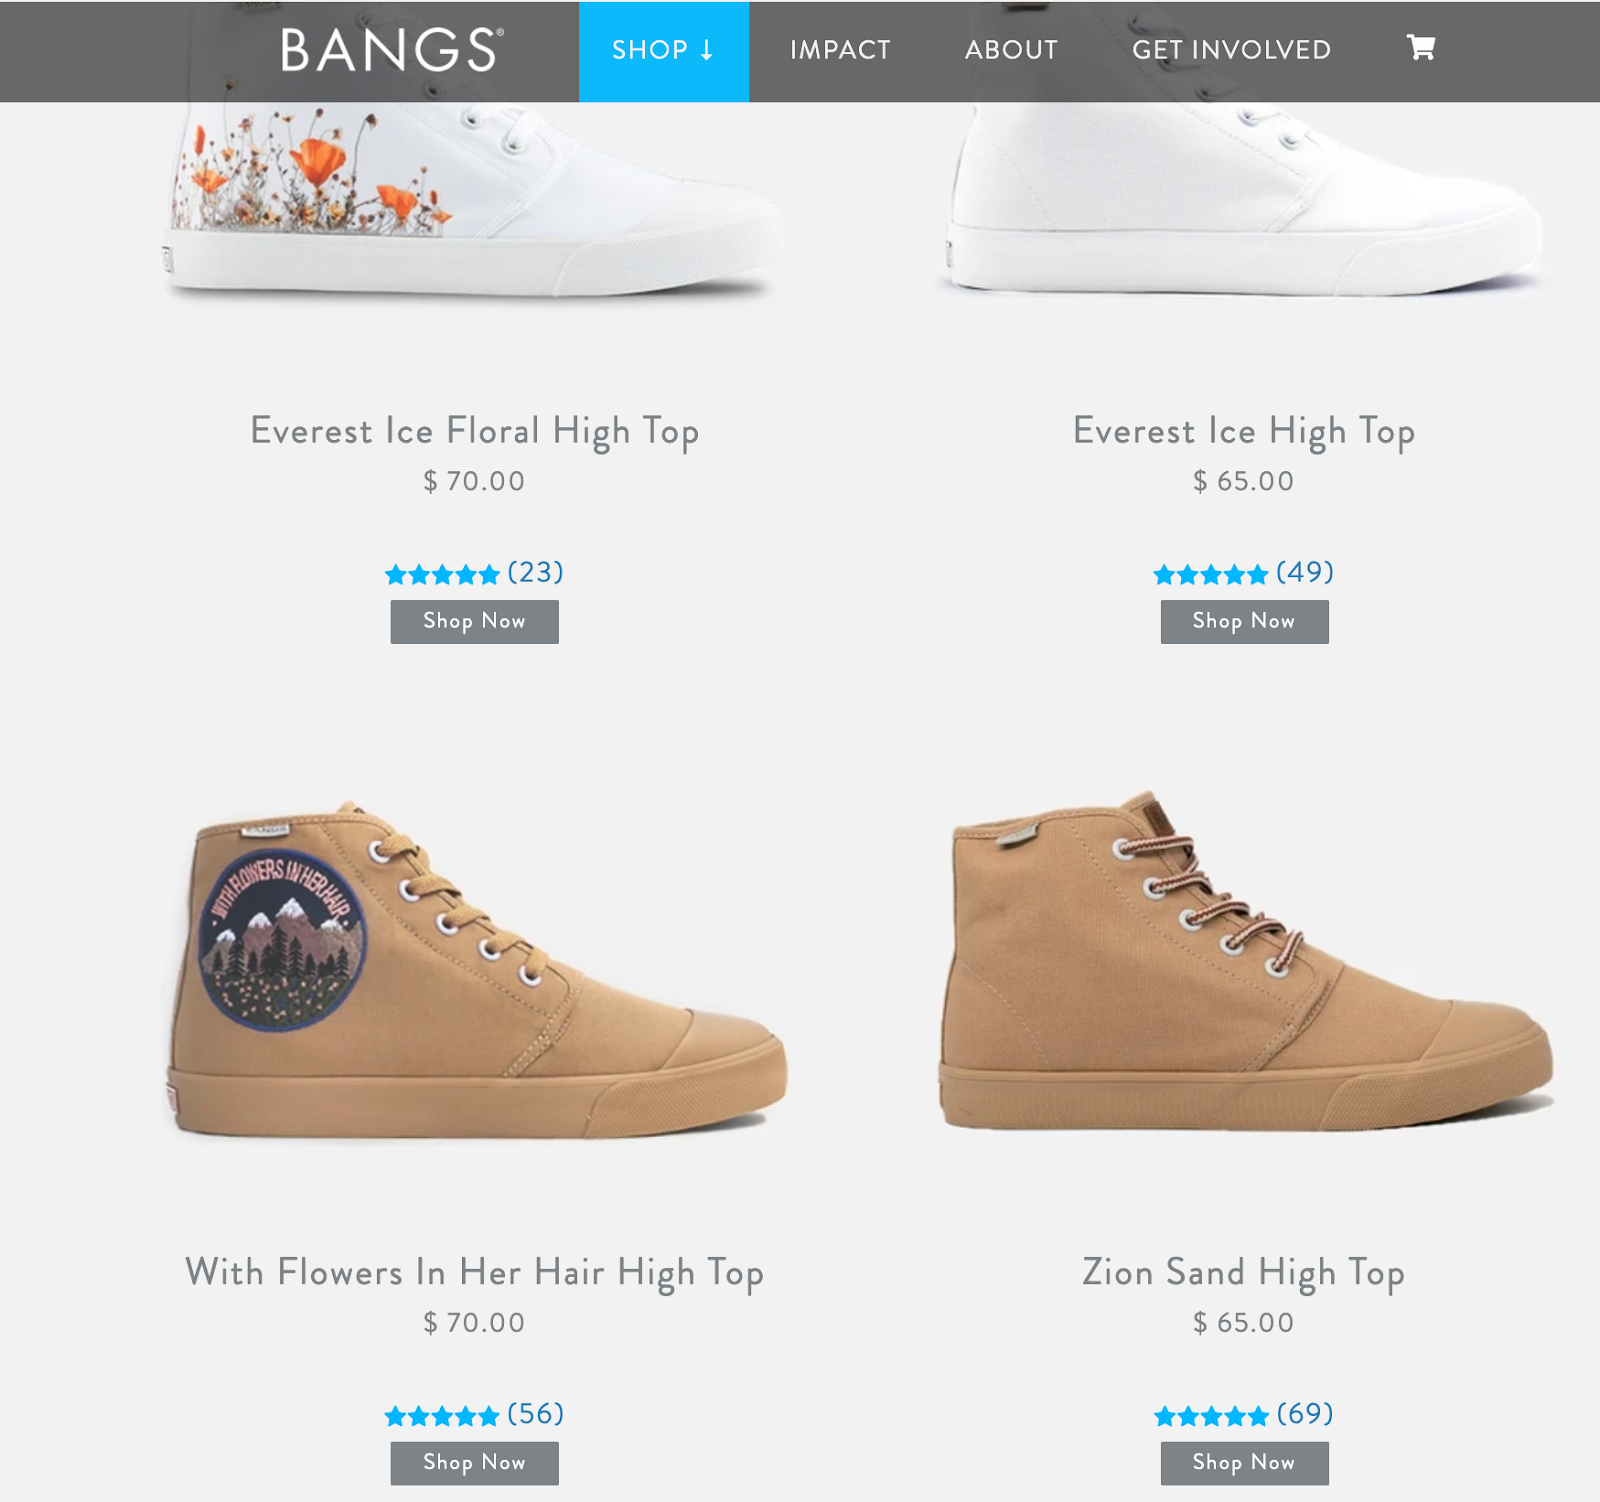 Bangs shoes product information